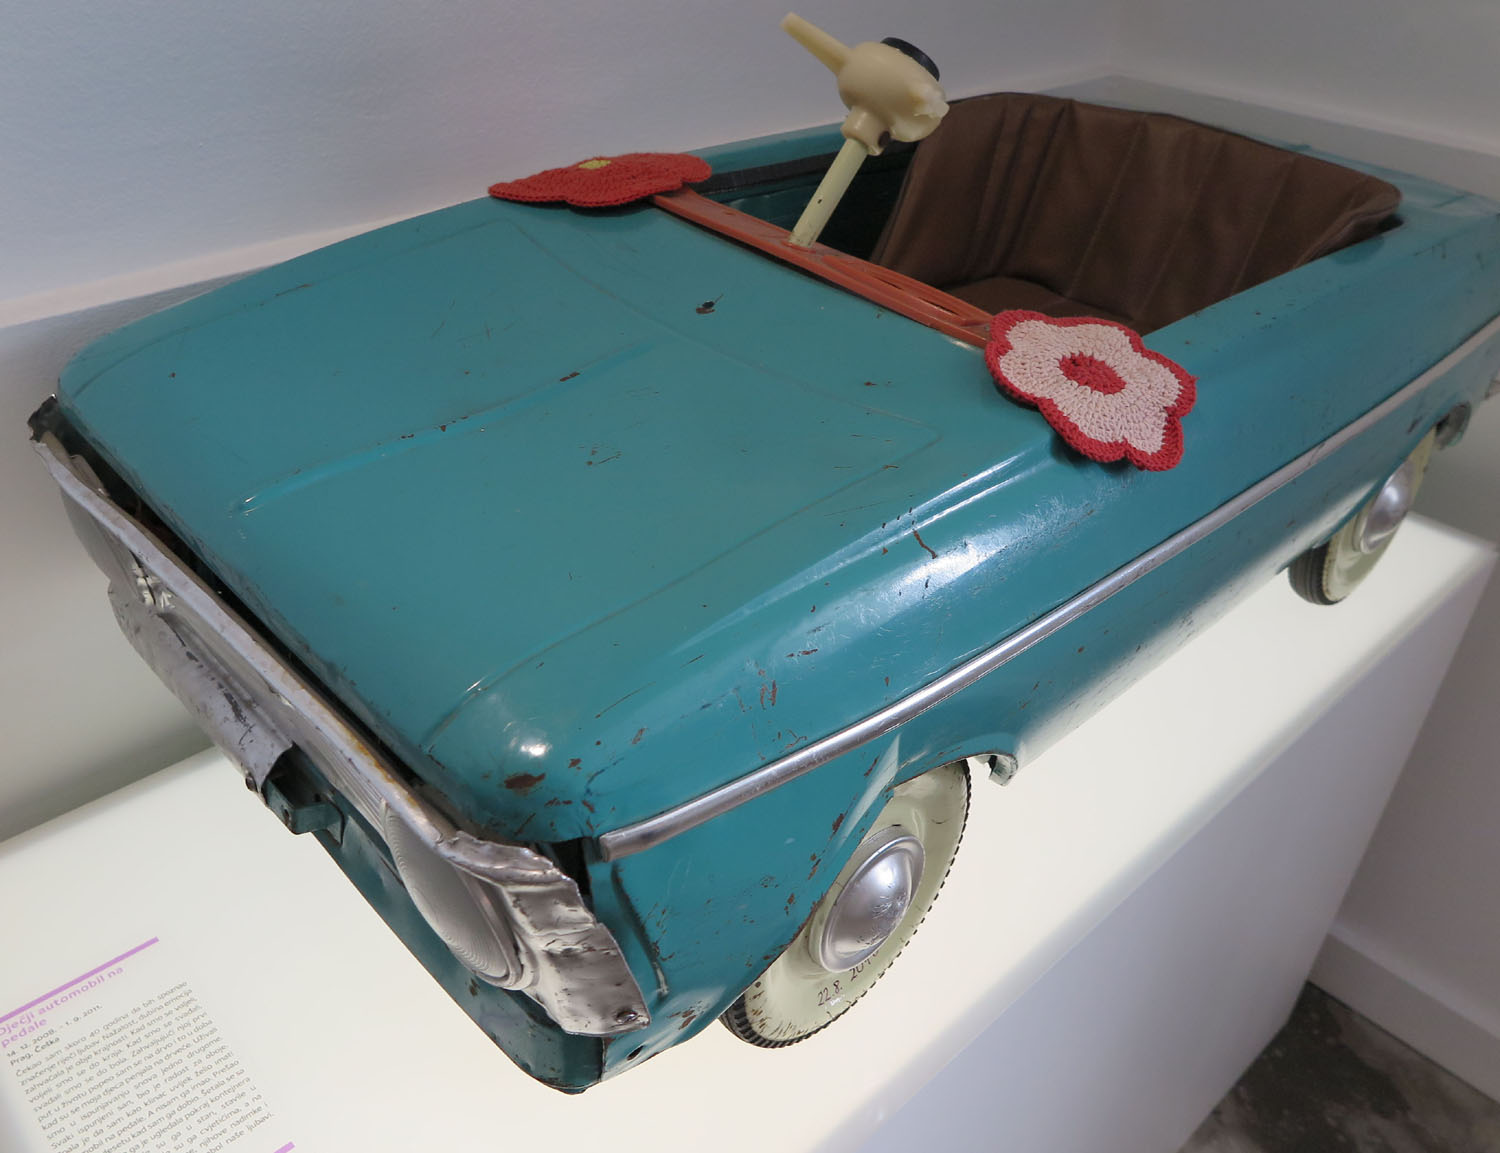 croatia-zagreb-museum-of-broken-relationships-pedal-car